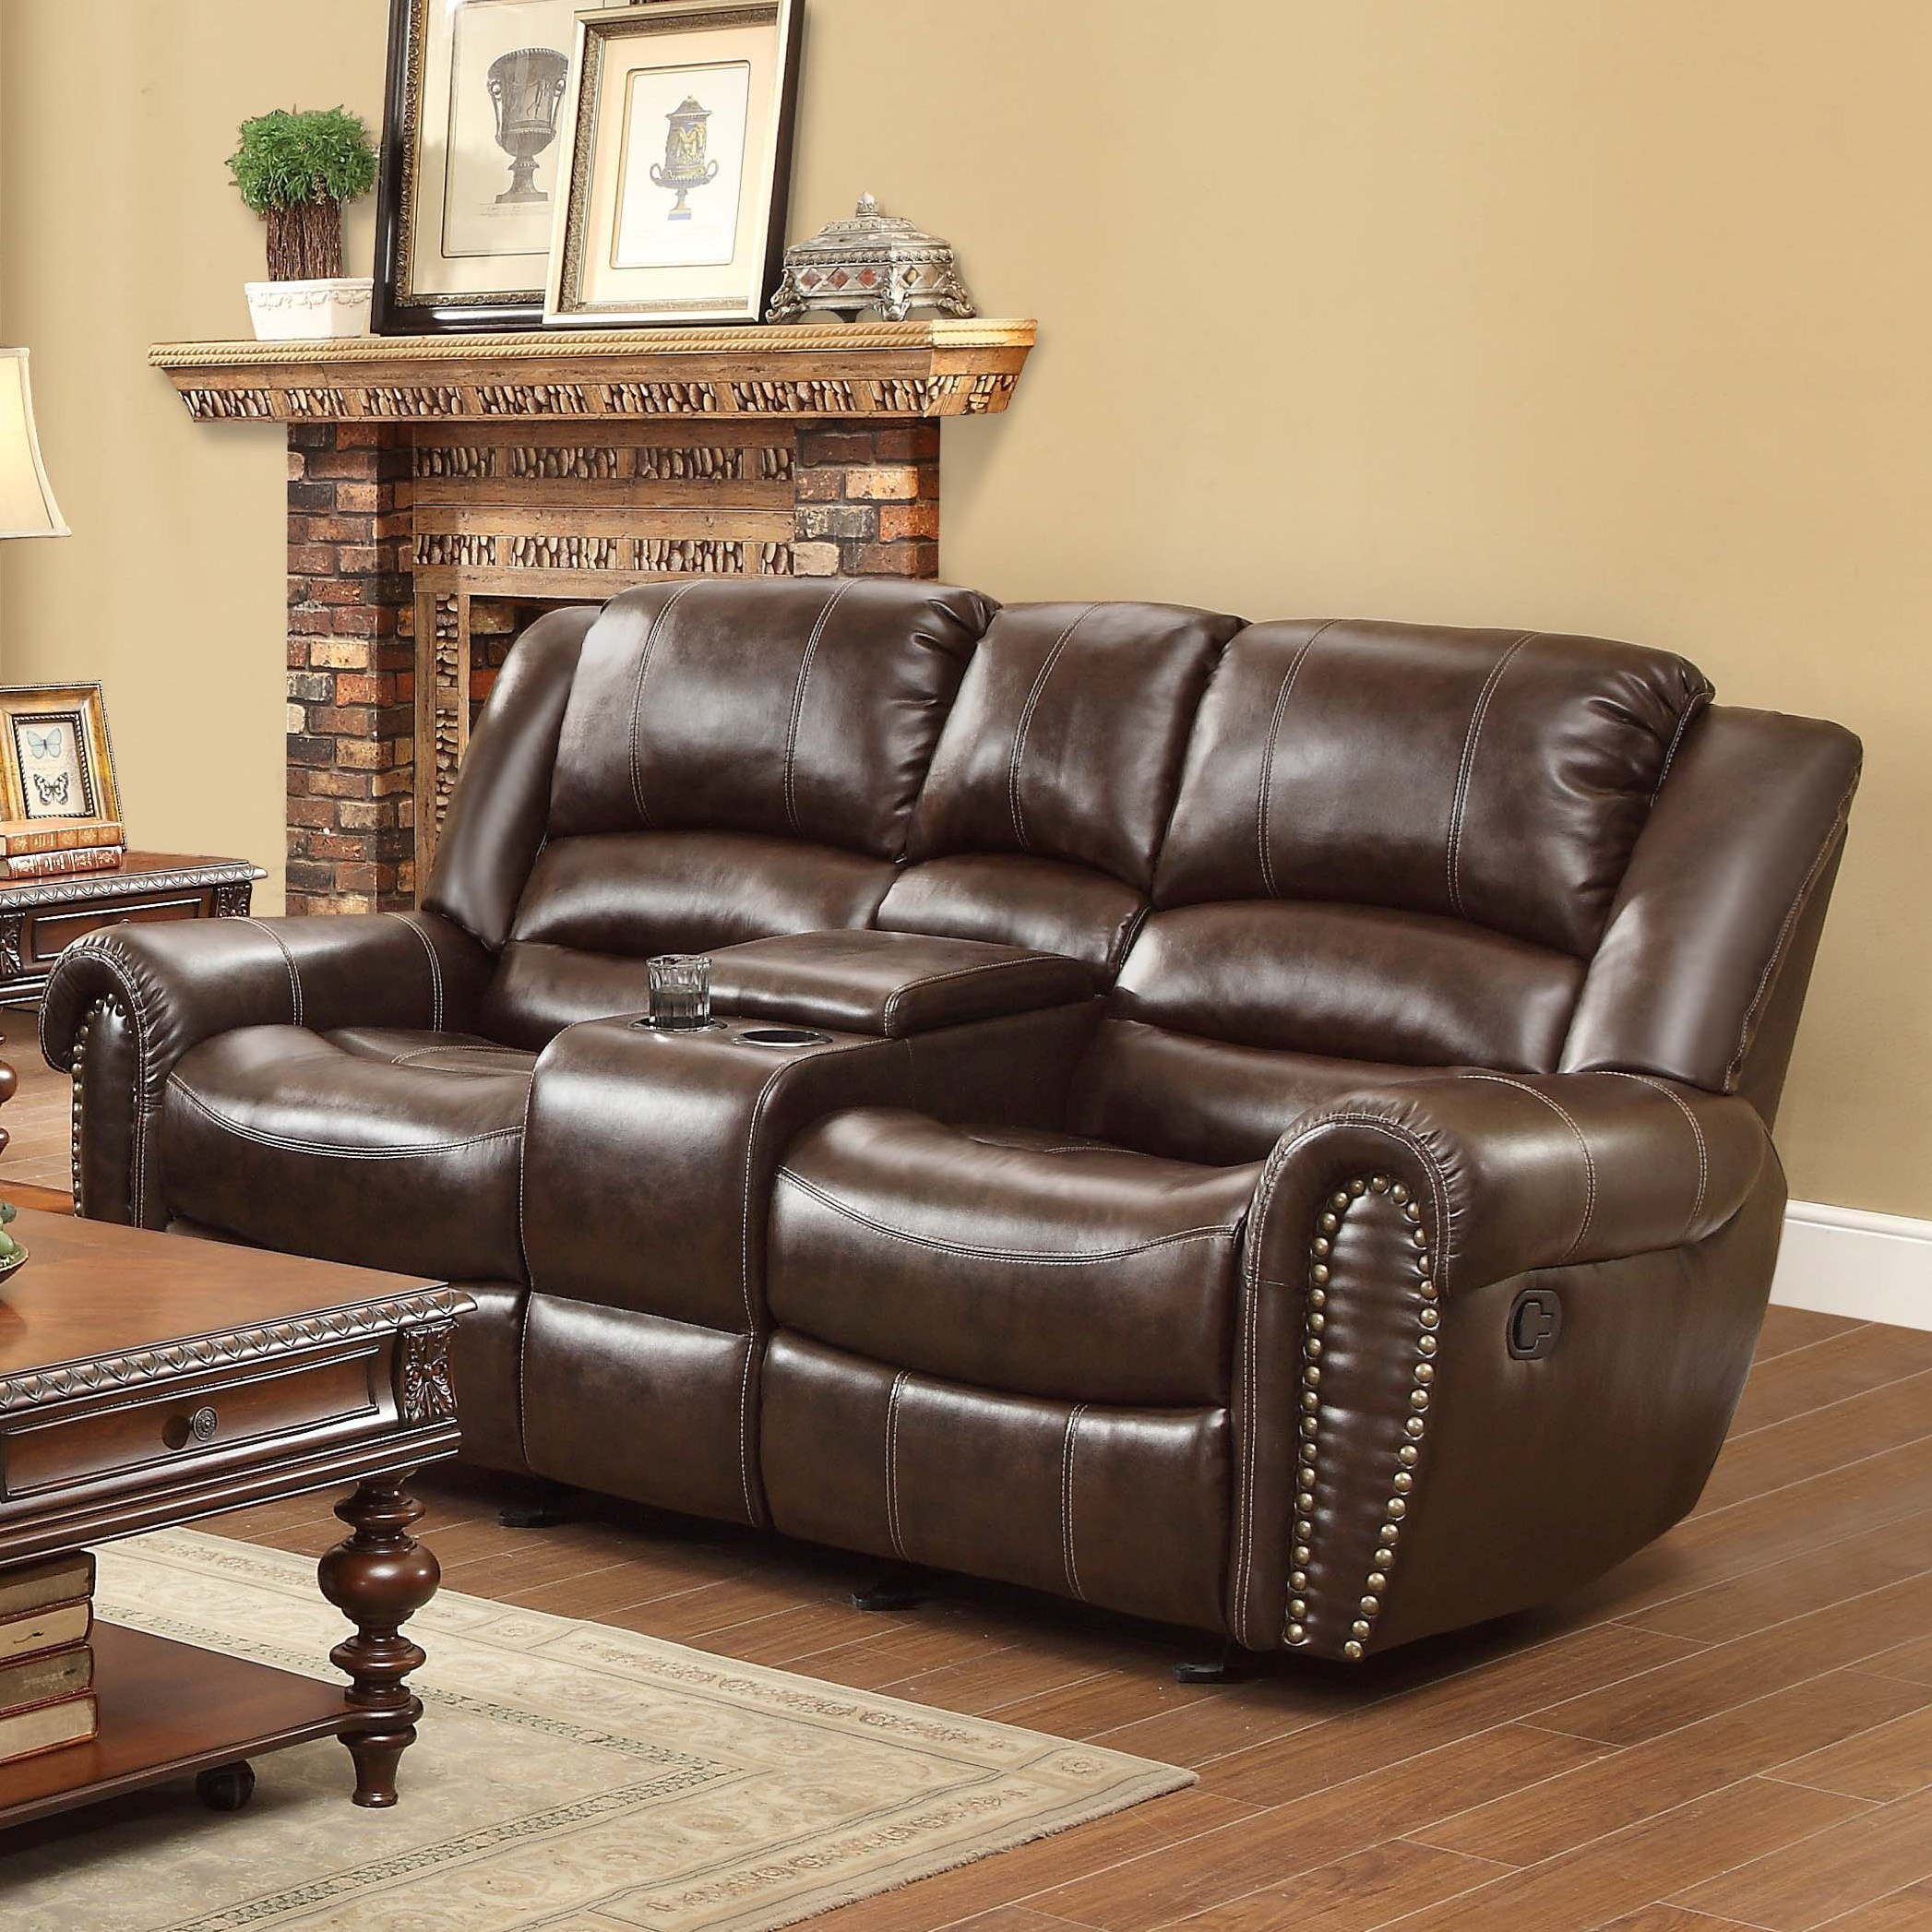 reclining sofa with nailhead trim bauhaus furniture sectional homelegance center hill 9668brw 2 traditional